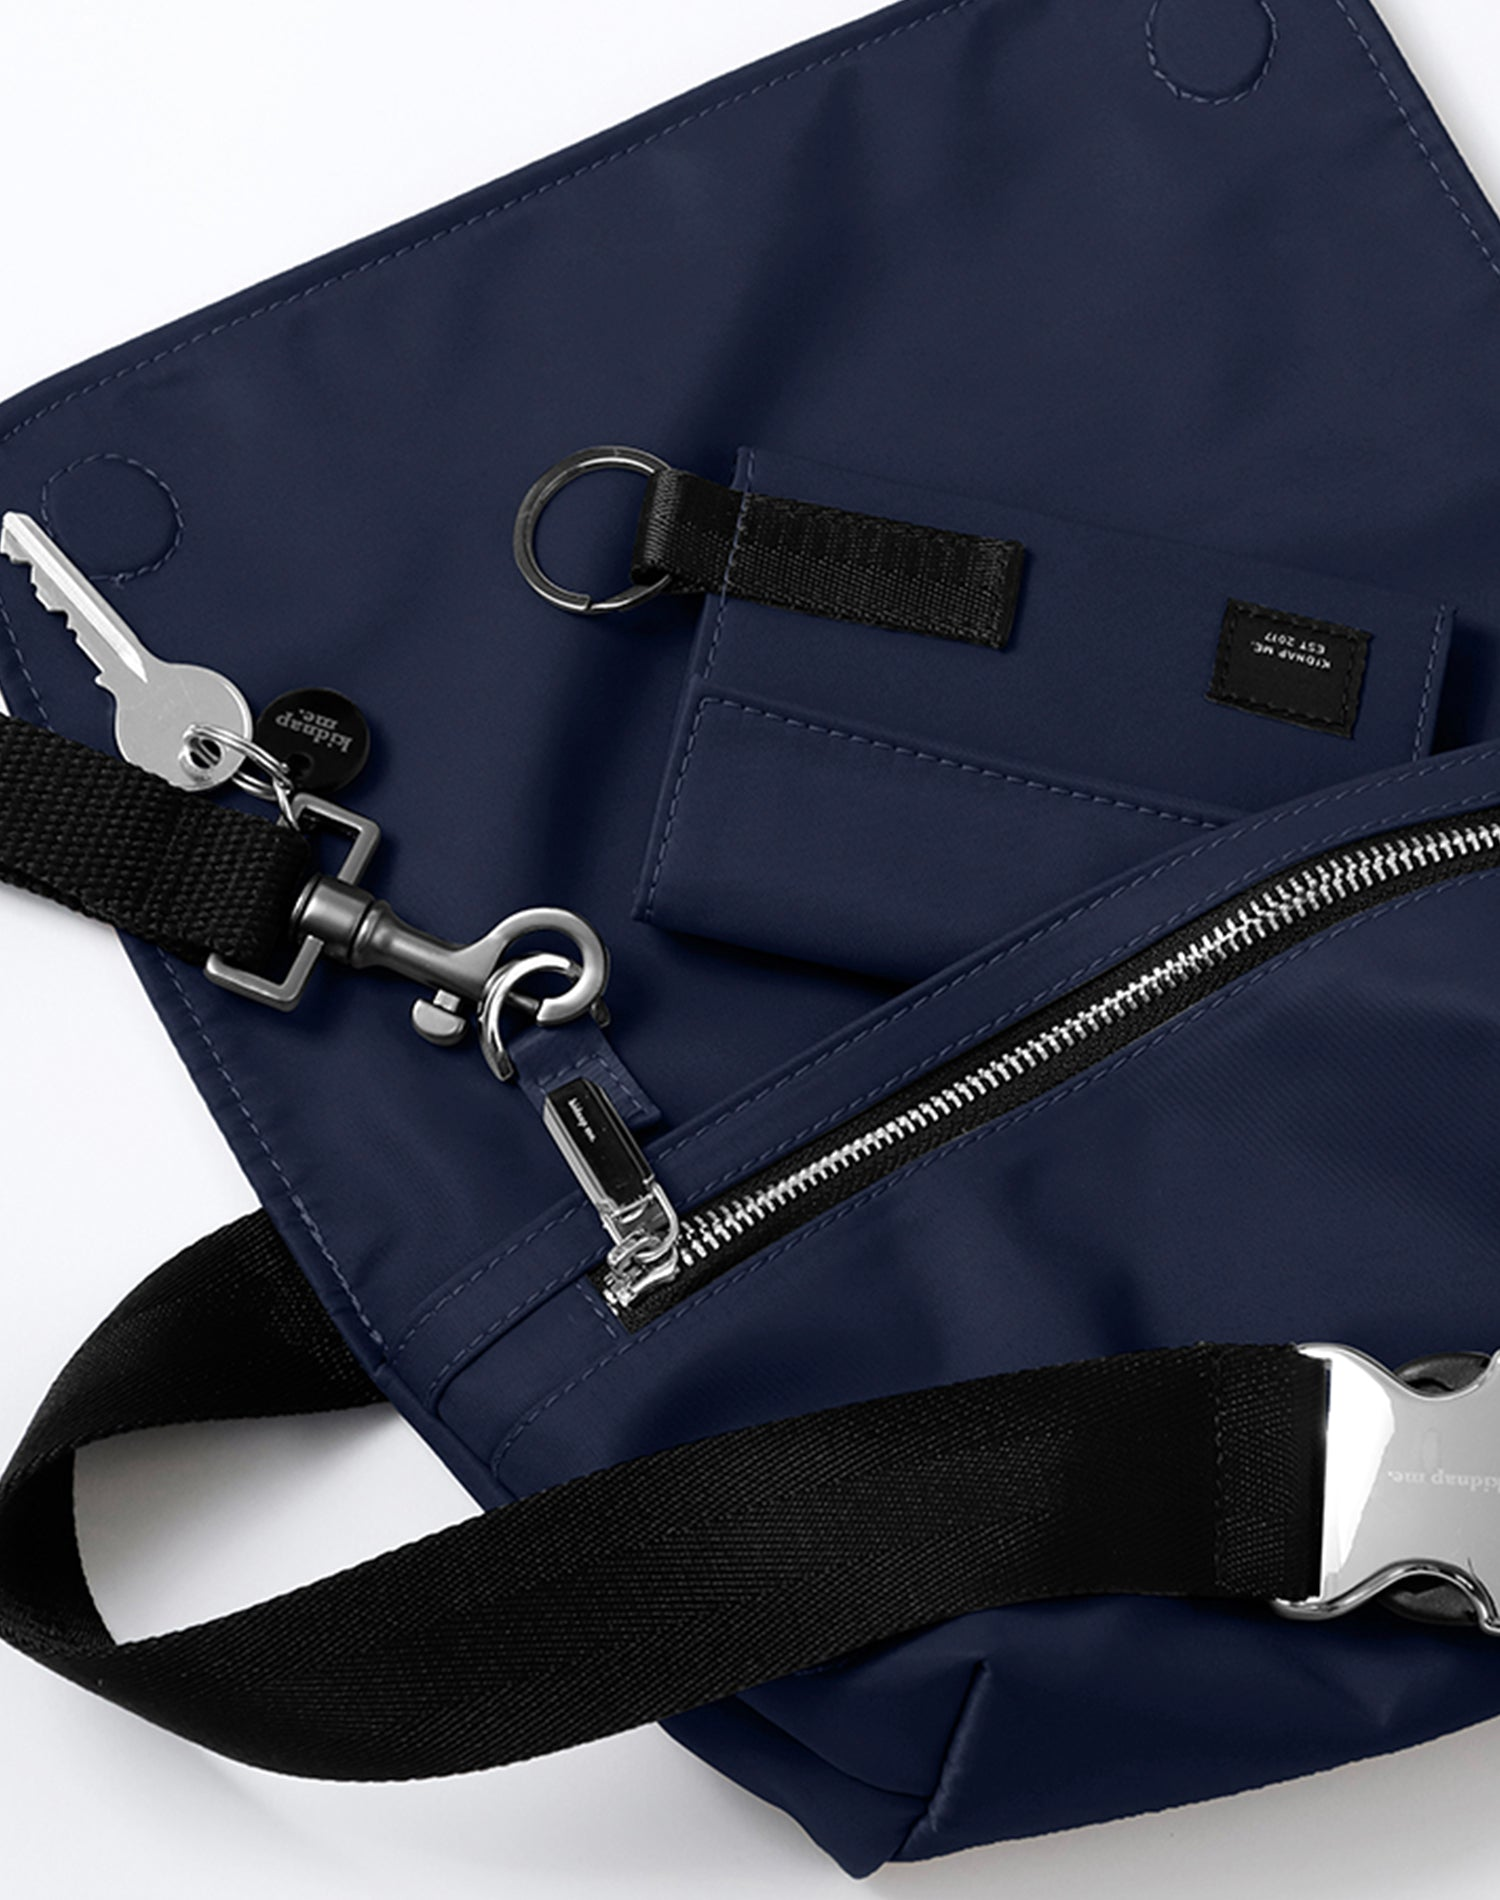 Indigo Nylon Belt Sling Bag.靛藍色尼龍斜揹腰包